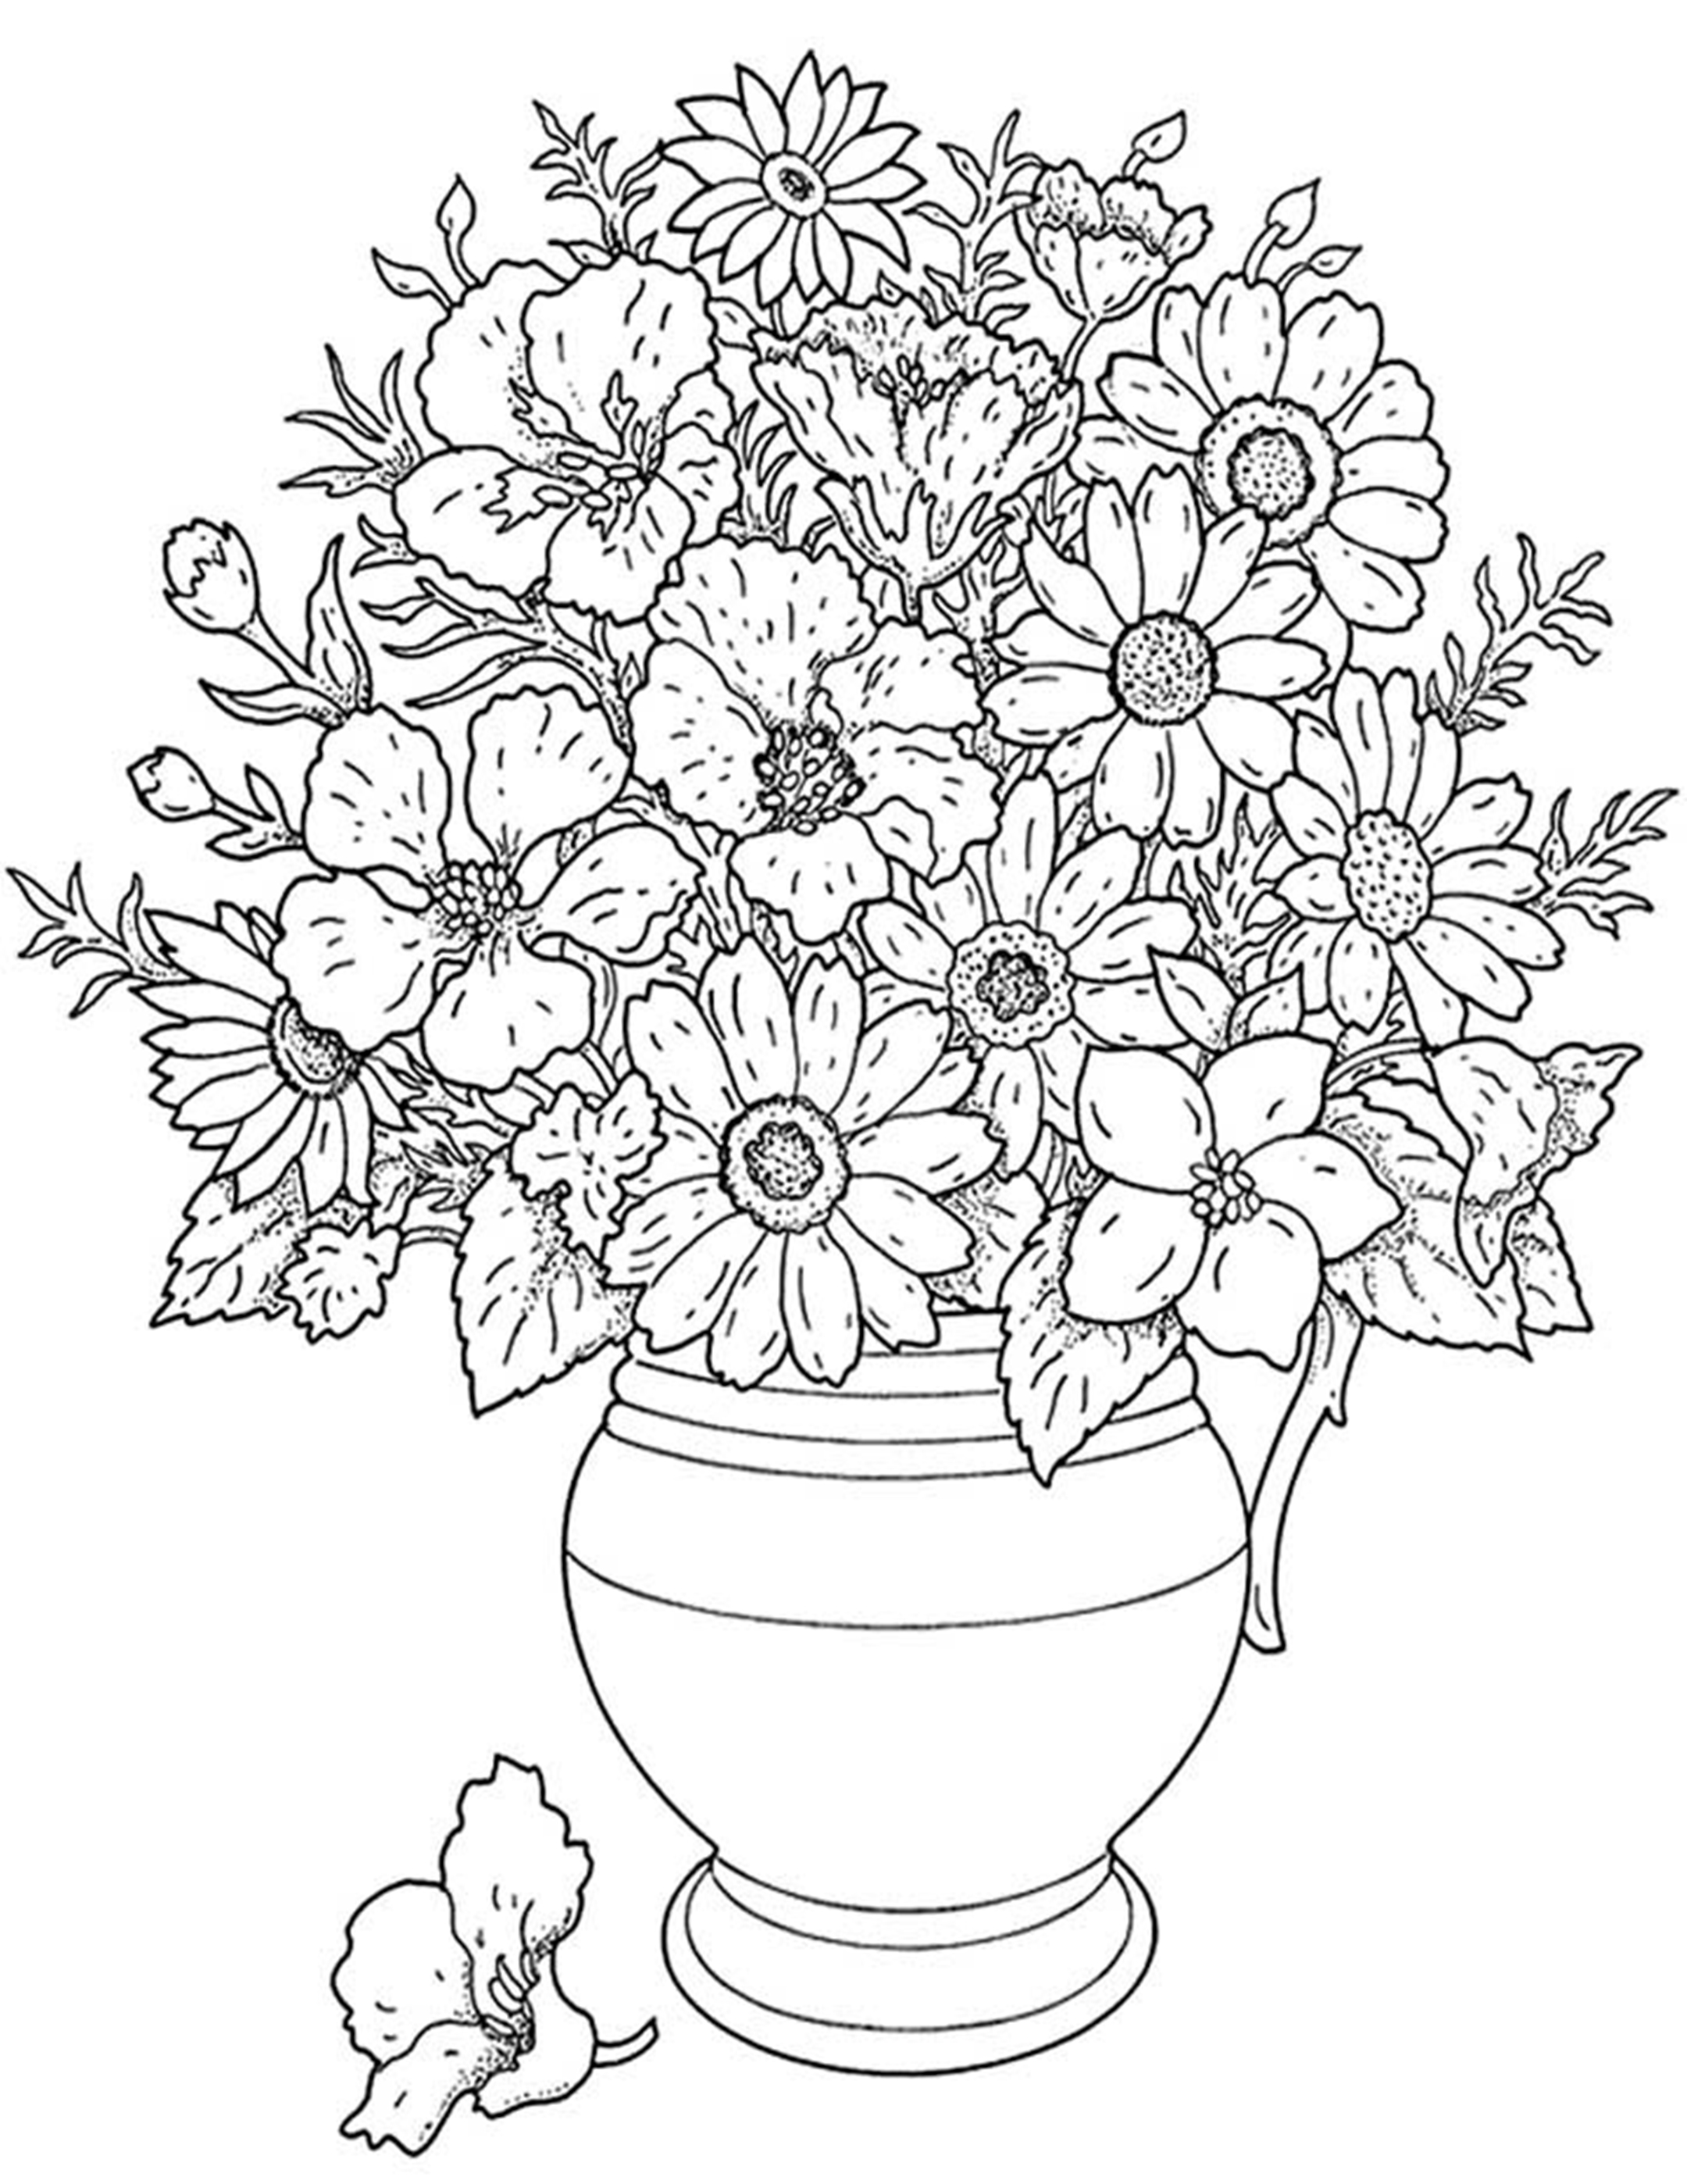 bouquet of roses coloring pages - free printable flower coloring pages for kids best